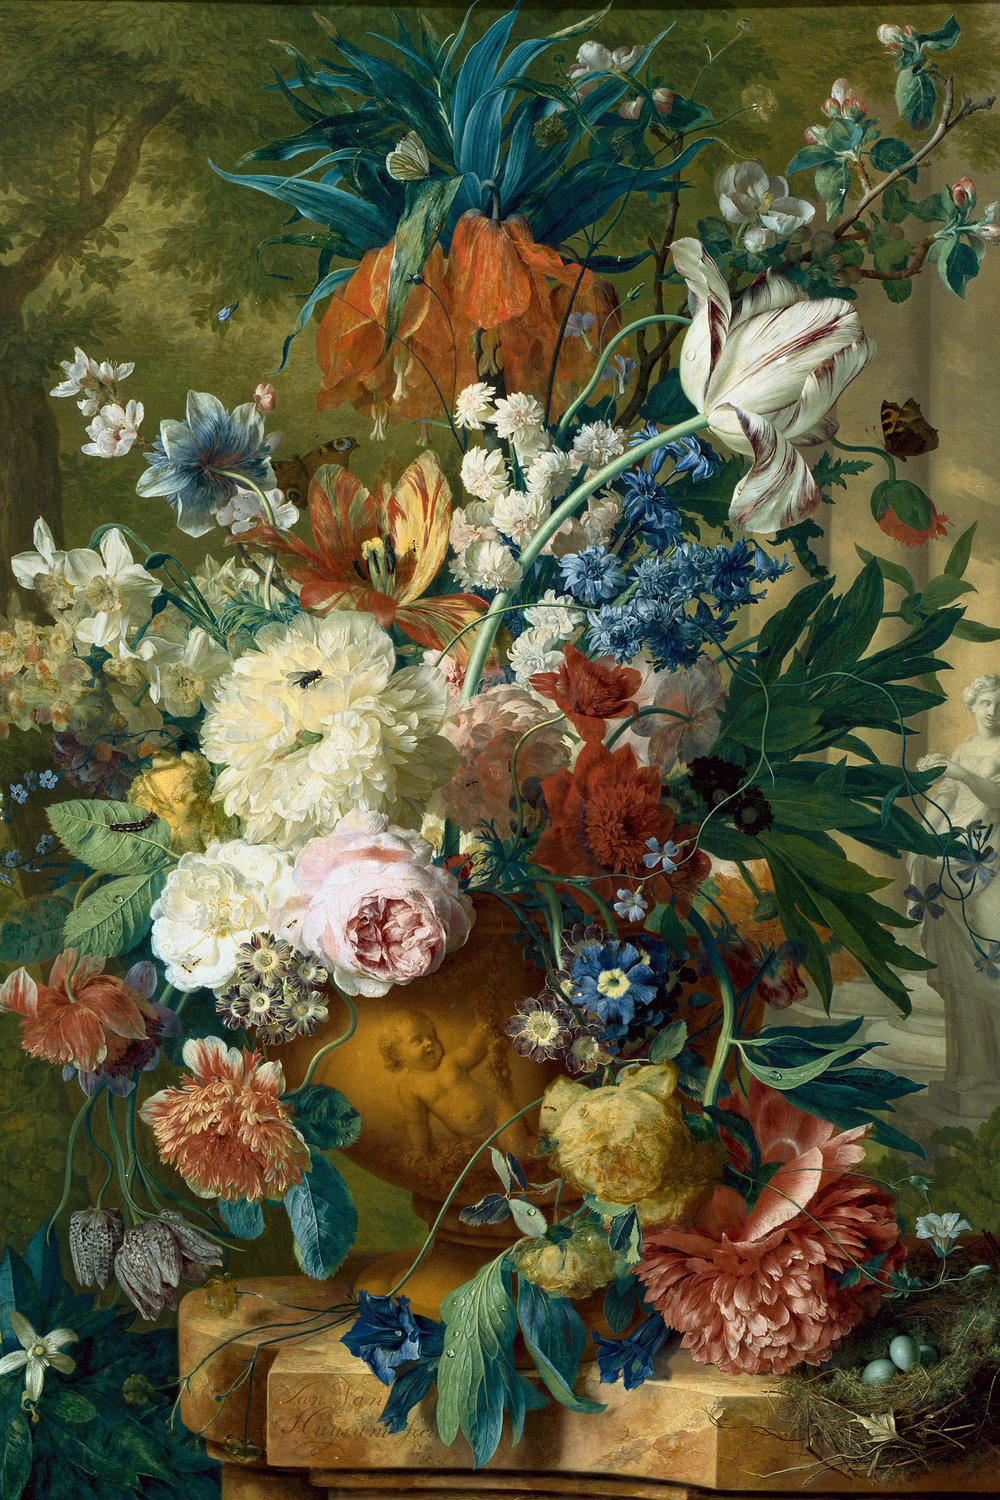 Jan van Huysum, Flowers in a Vase with Crown Imperial and Apple Blossom at the Top and a Statue of Flora 1731-2.  What's in this bouquet?  Fritillaria imperialis ,  Fritillaria meleagris ,  Tulipa  spp.,  Narcissus  spp.,  Paeonia  spp.,  Rosa  spp . ,  Vinca  spp.,  Primula  spp.,  Malus  spp.,  Papaver somniferum  or  orientale ,  Ipomoea purpurea .  Whoa… No wonder it took van Huysum two years to paint.